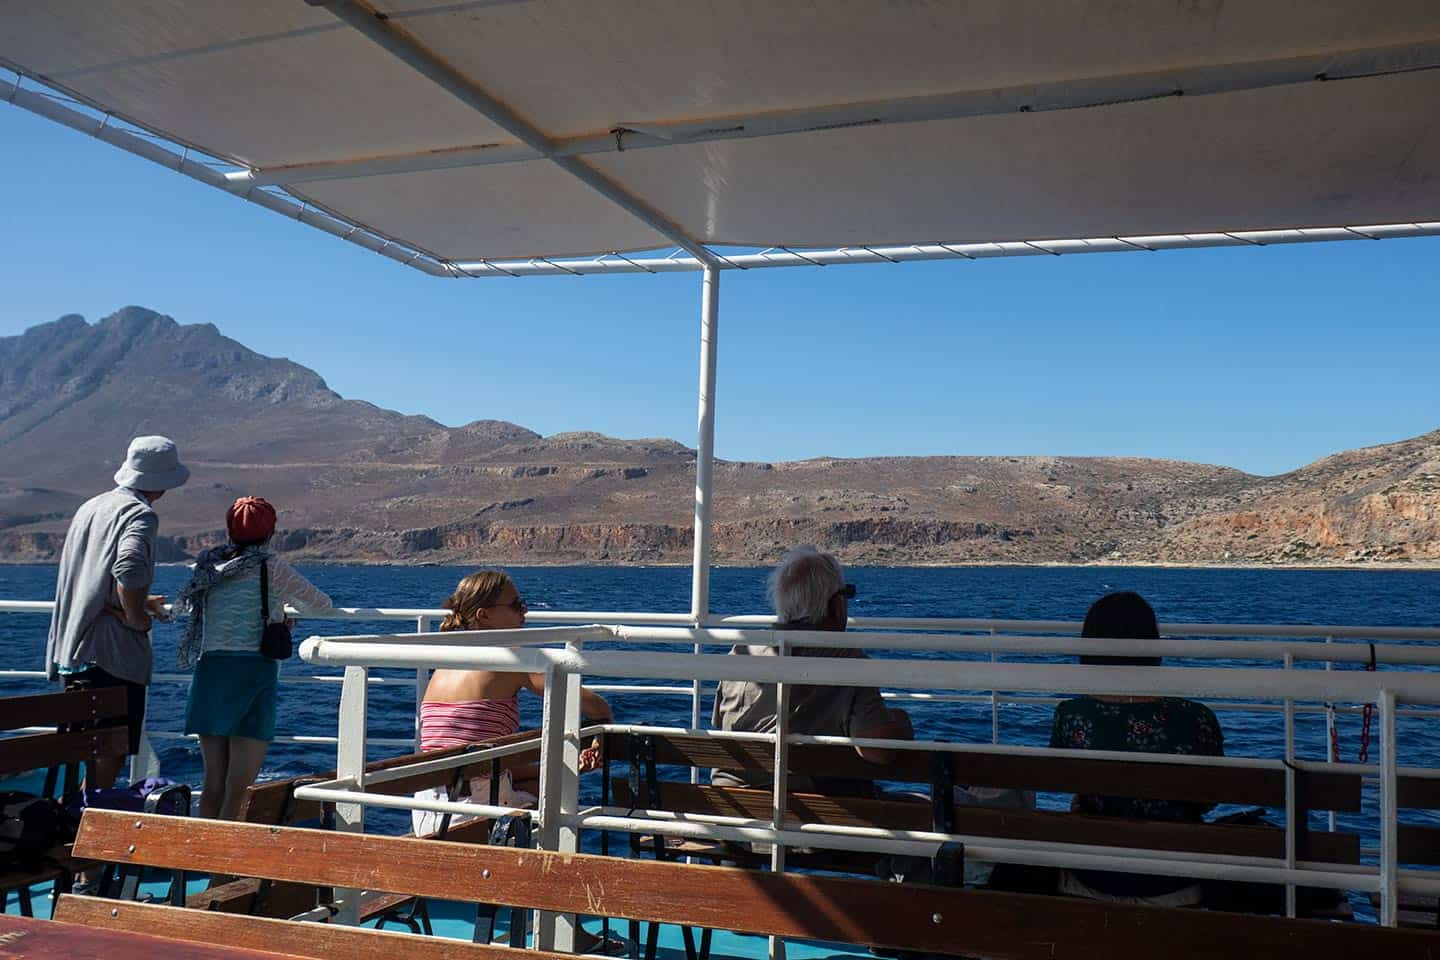 Image of passengers enjoying the view from the Balos cruise